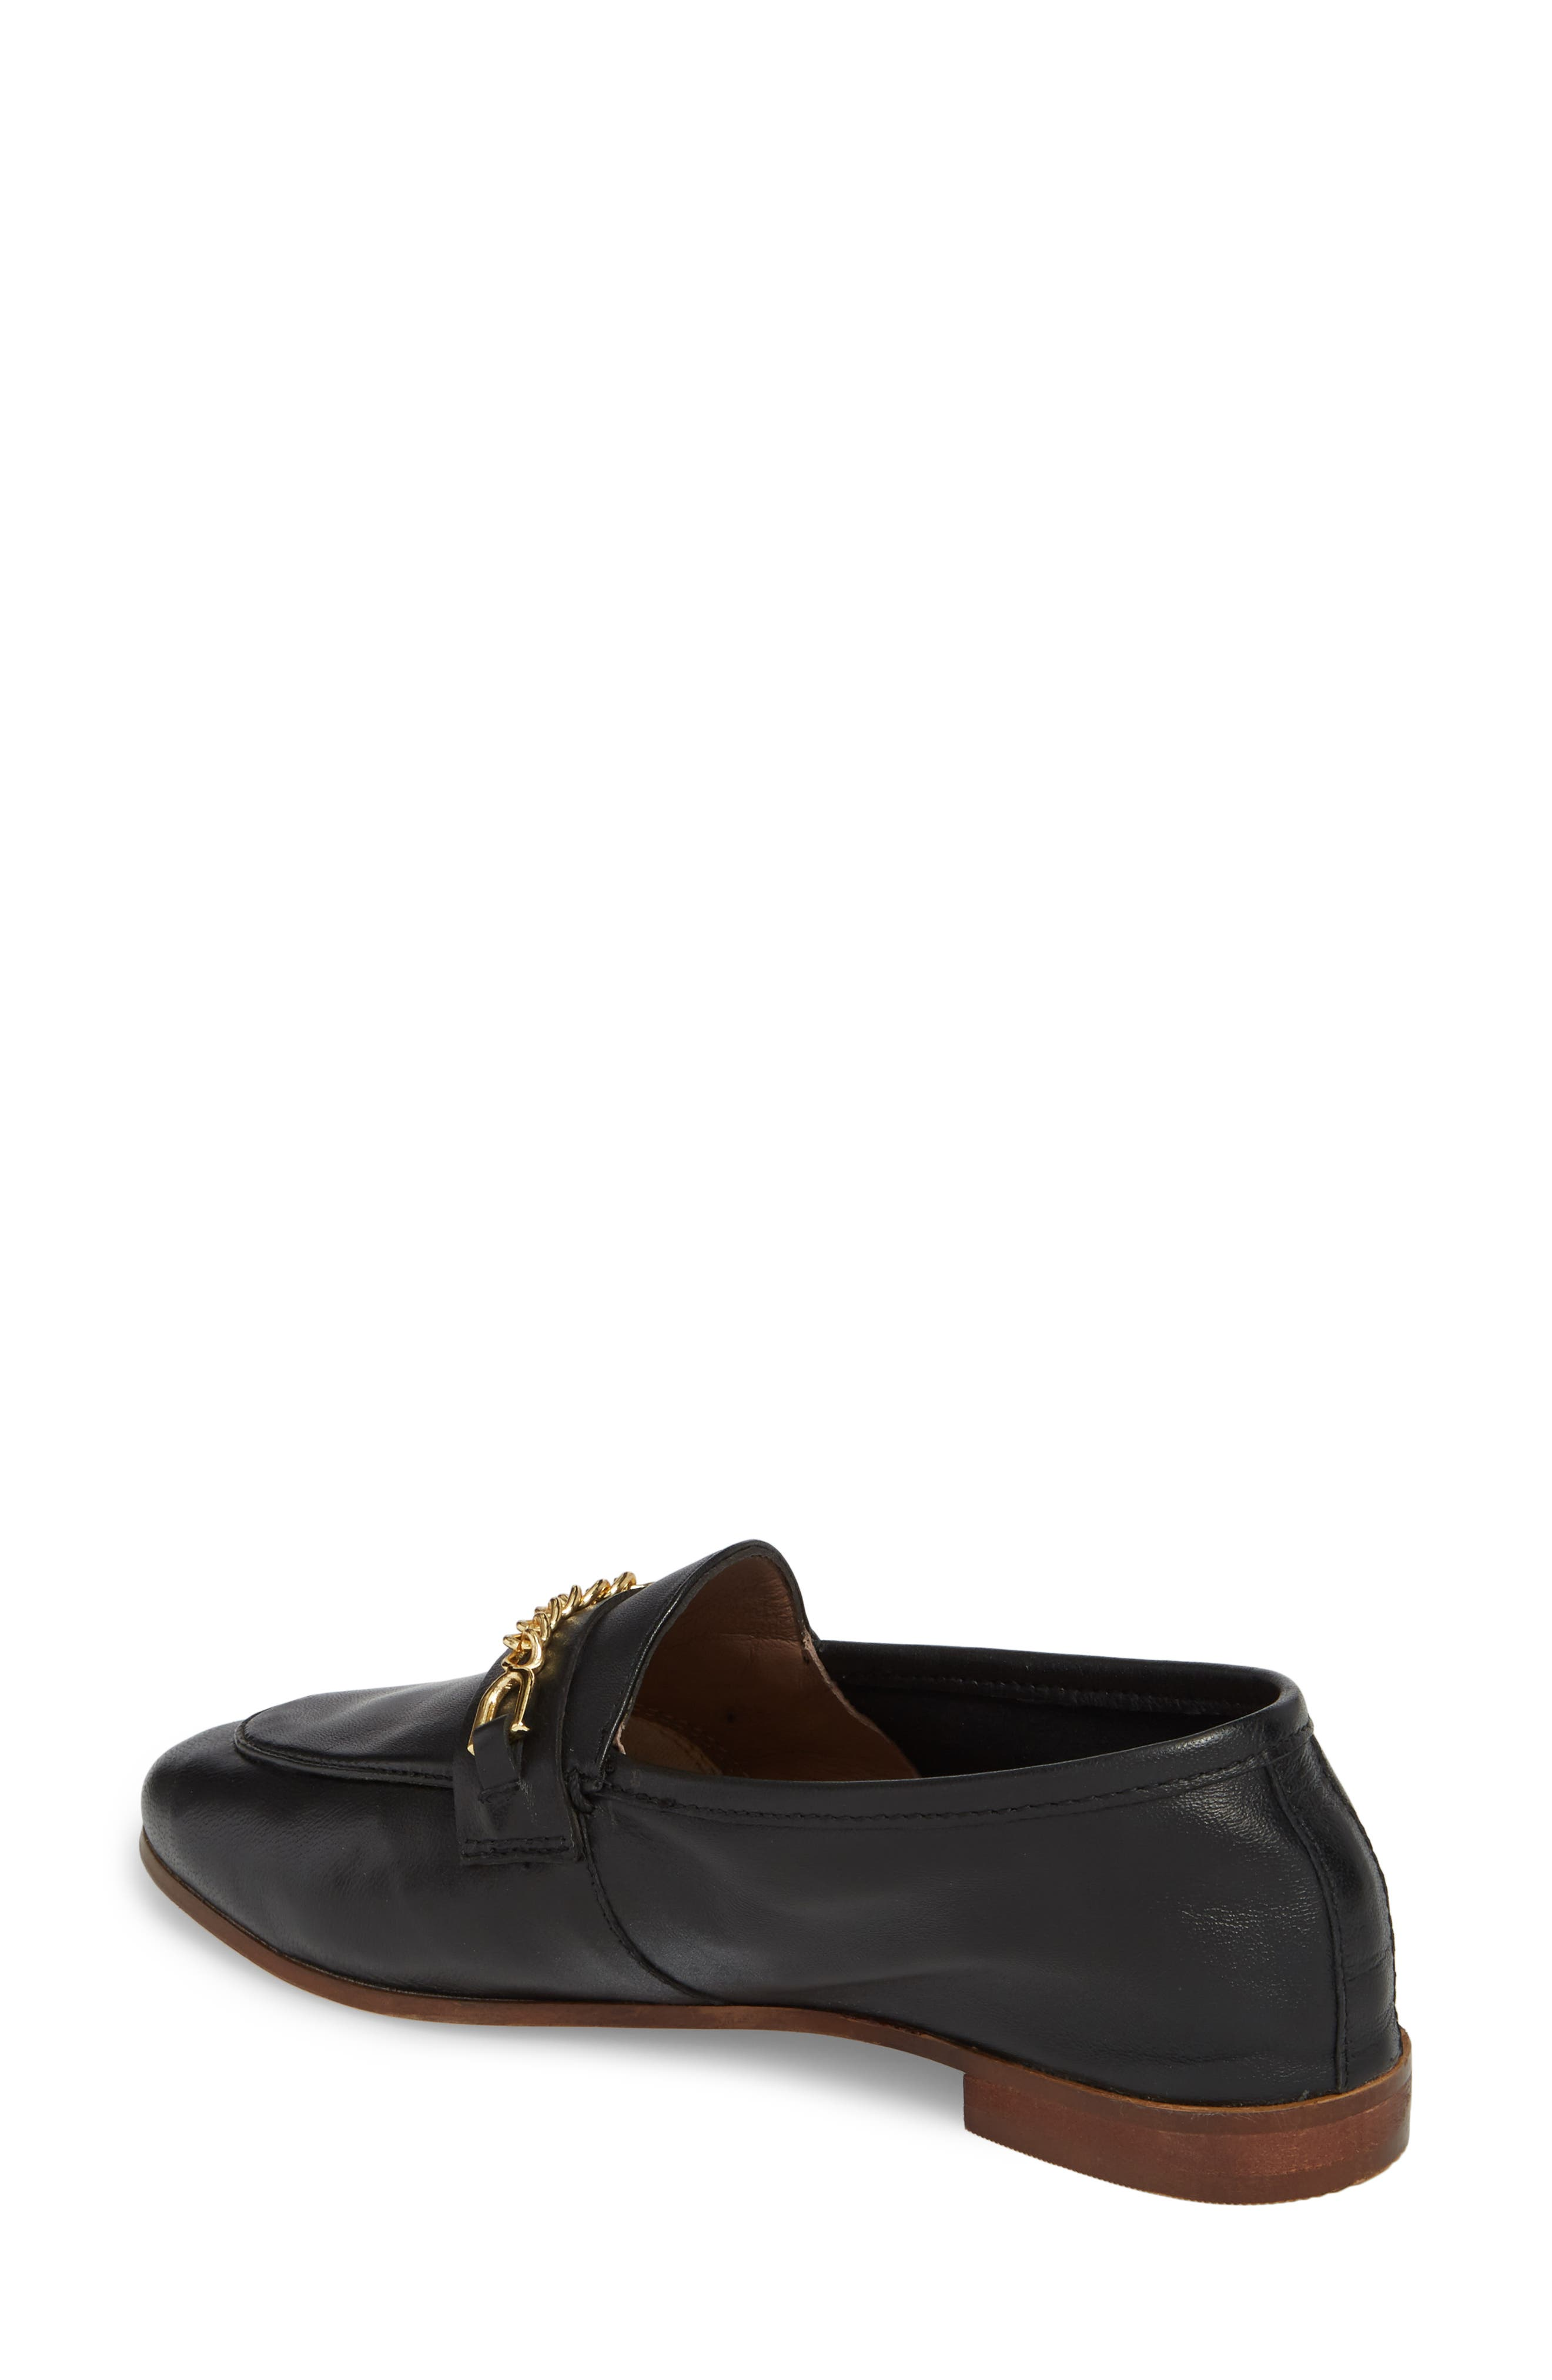 Chain Trim Apron Toe Loafer,                             Alternate thumbnail 2, color,                             001